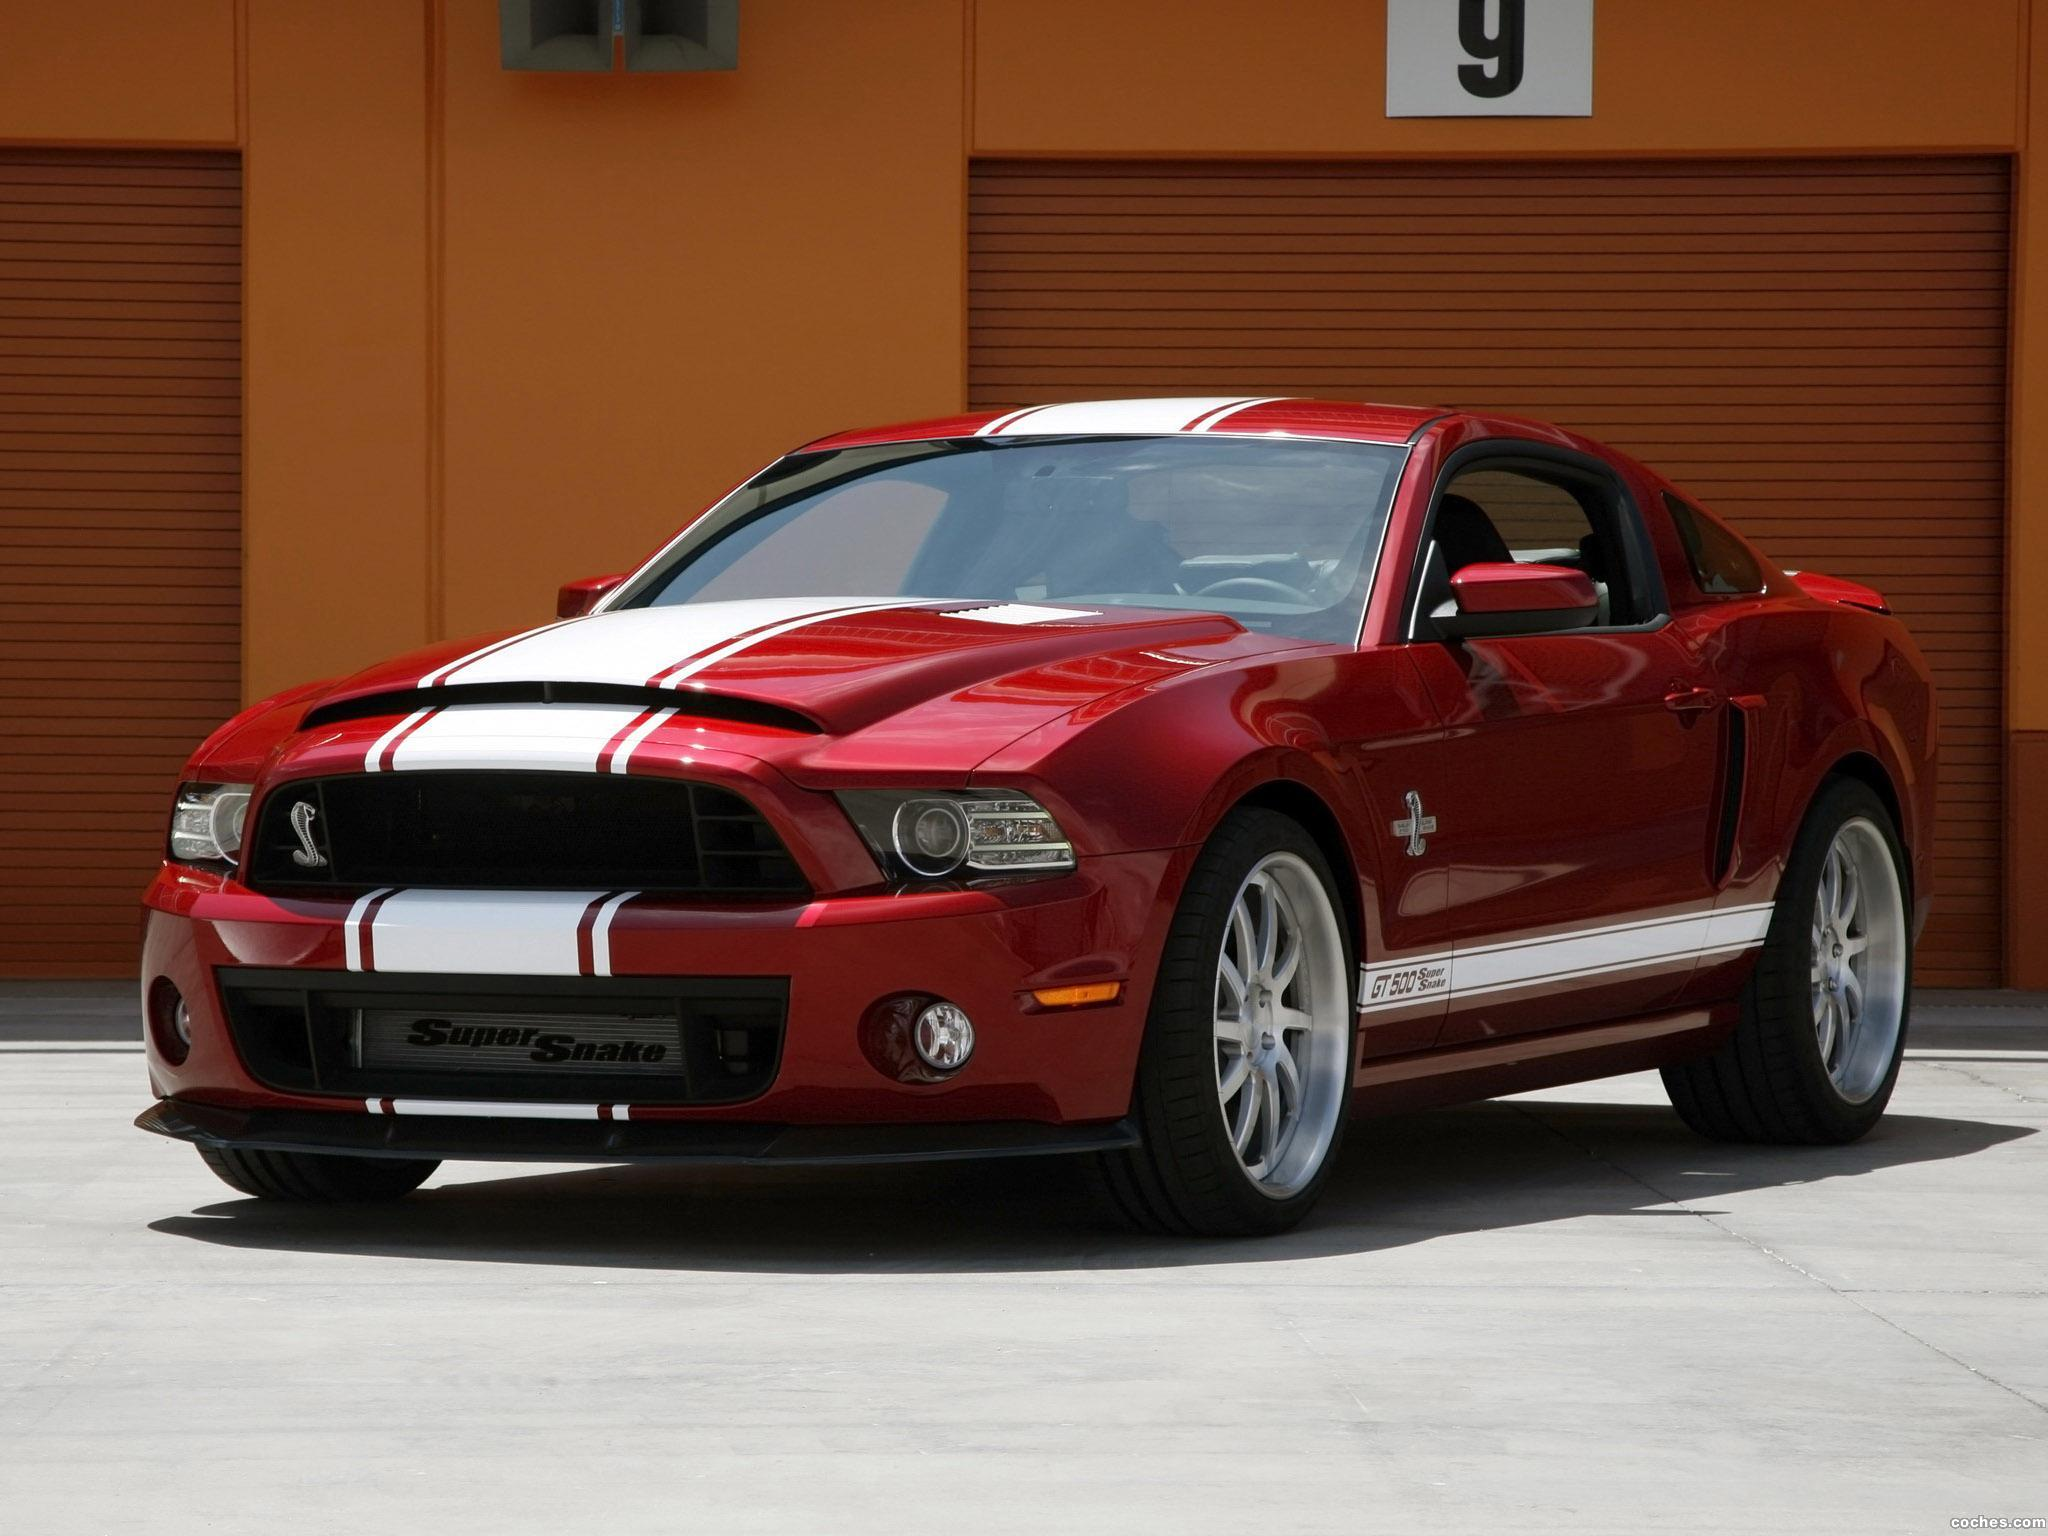 Fotos de Ford Shelby Mustang GT500 Super Snake 2013  Foto 6